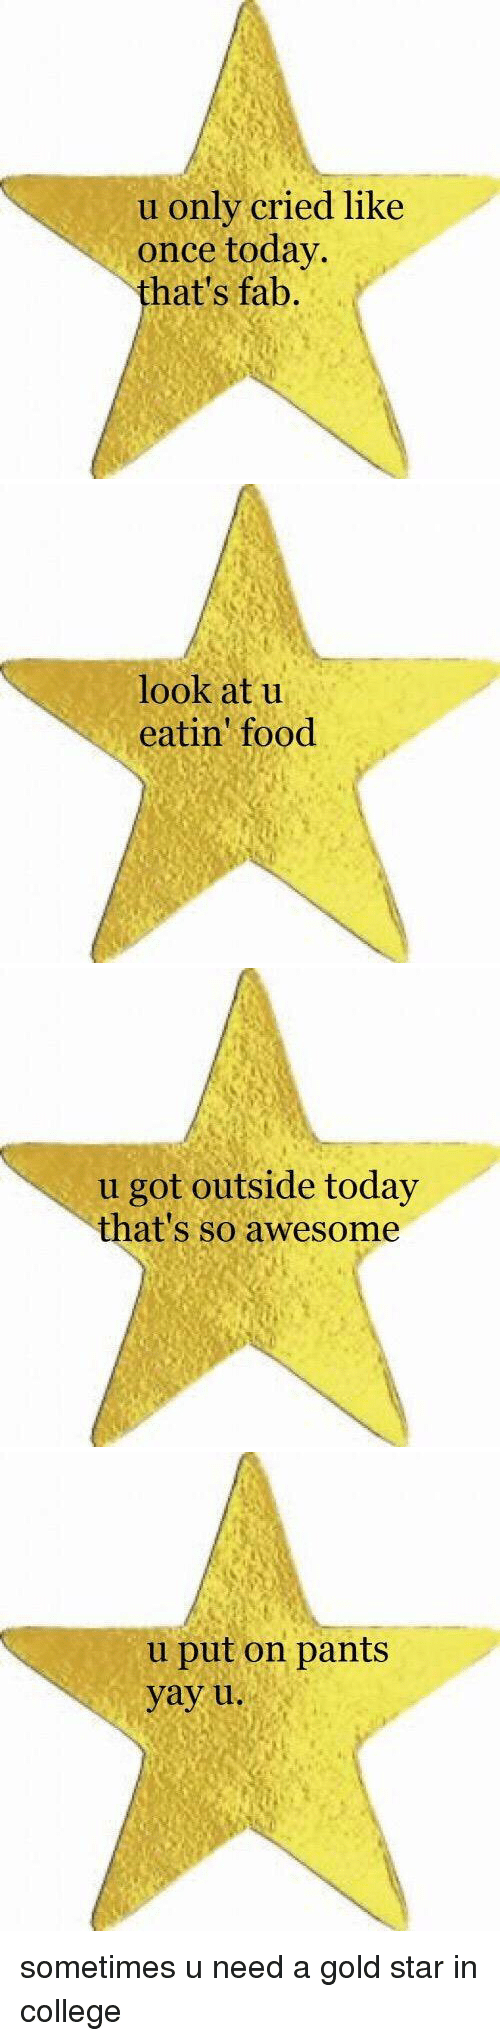 College, Funny, and Star: u only cried like  once today.  hat's fab.   look at u  eatin' food   u got outside today  that's so awesome   u put on pants  yay u. sometimes u need a gold star in college